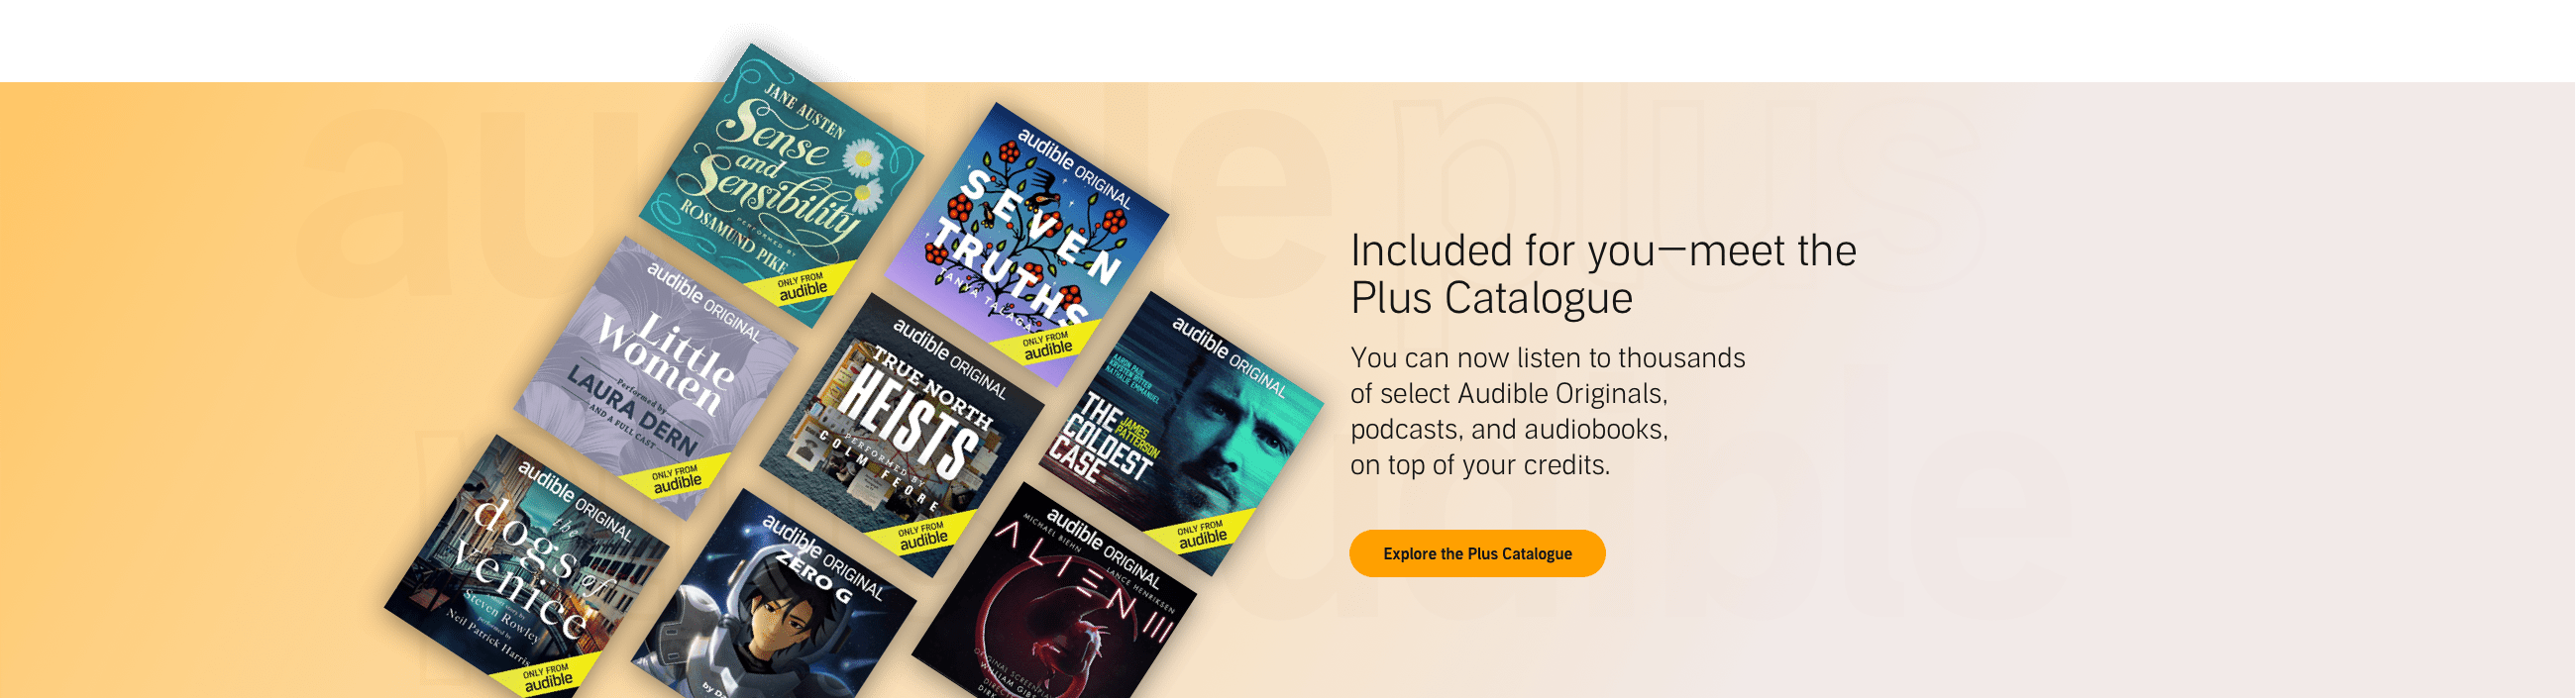 Included for you—meet the Plus Catalogue. You can now listen to thousands of select Audible Originals, podcasts, and audiobooks, on top of your credits. Explore the Plus Catalogue >